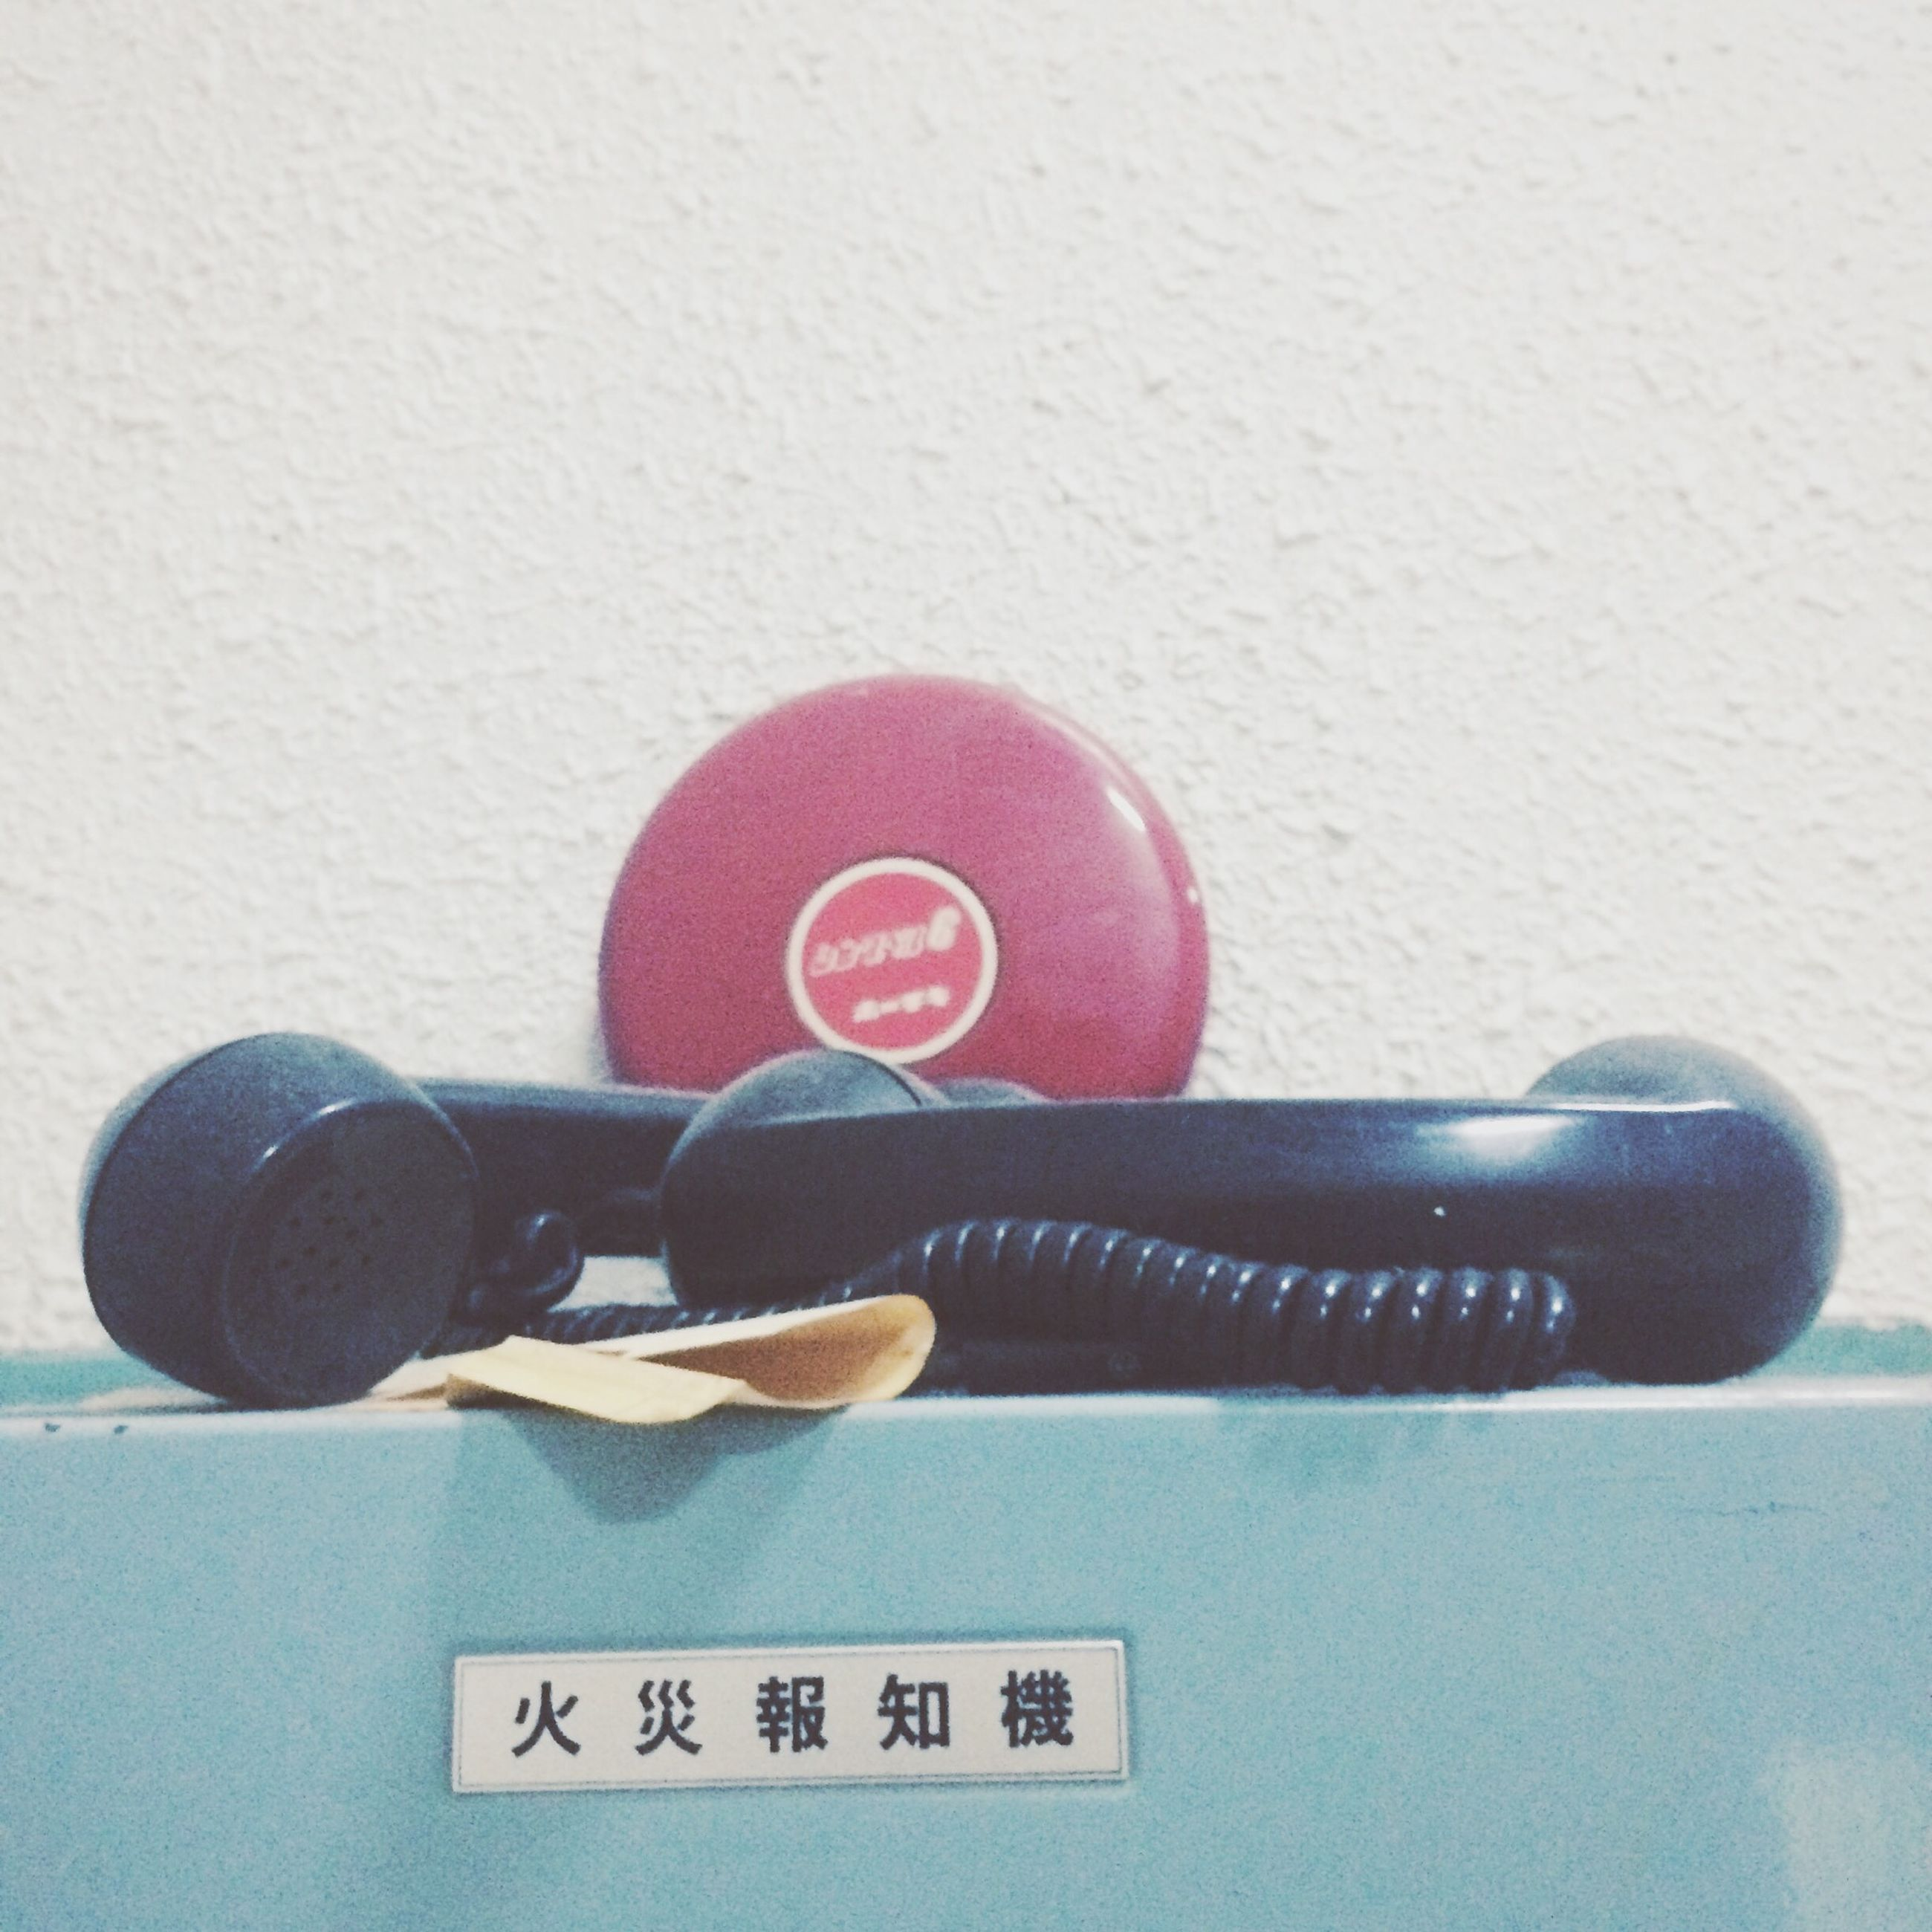 communication, text, red, indoors, western script, close-up, wall - building feature, number, still life, guidance, shoe, technology, high angle view, safety, sign, day, connection, no people, single object, footwear